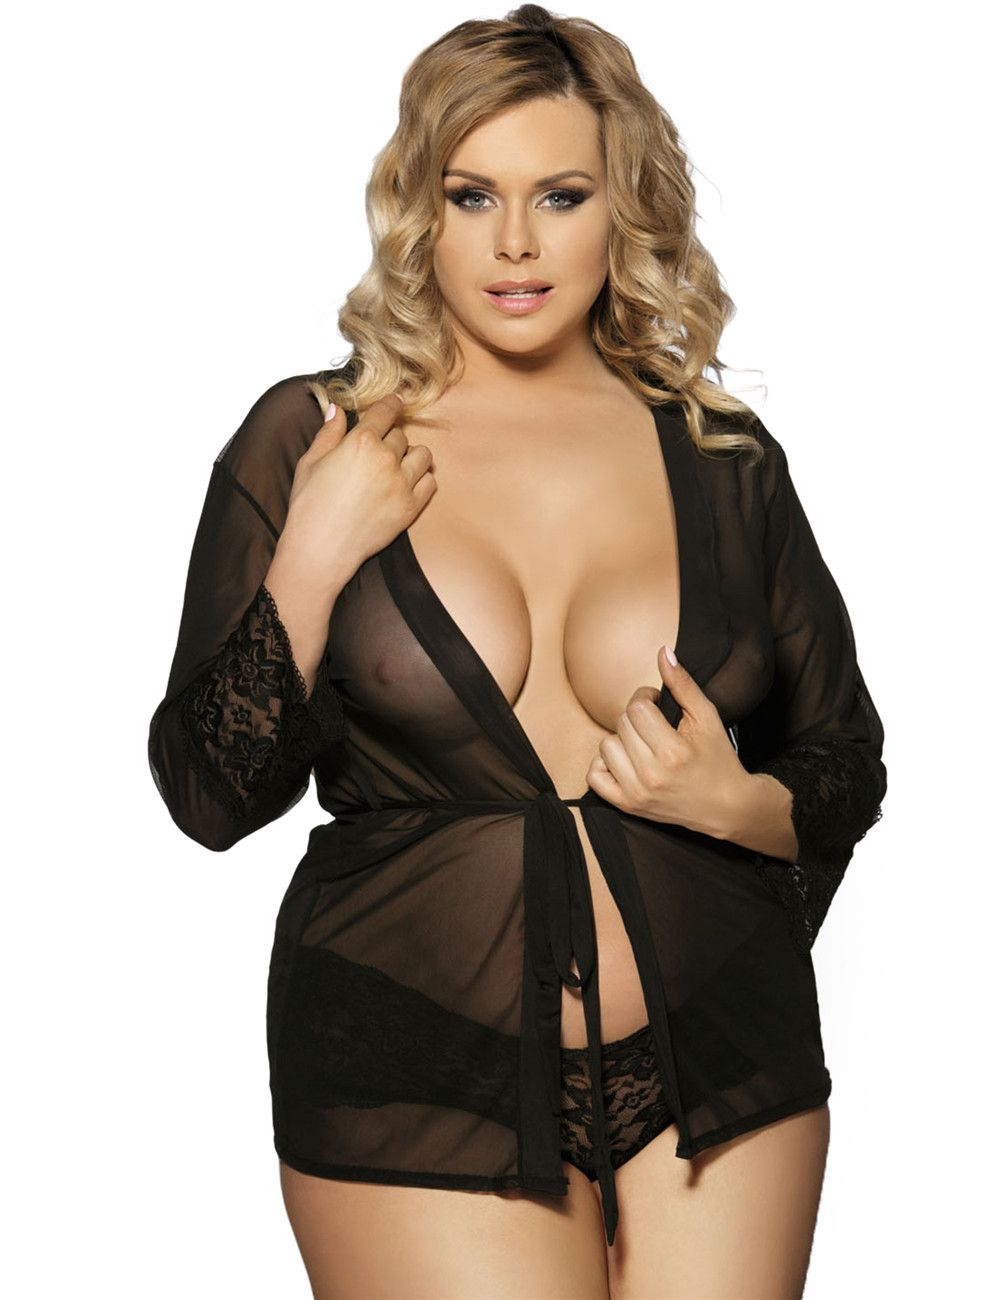 9e9c54d903 Plus Size black Babydoll   Lingerie For Fat Women From  imsexy4u.com ...